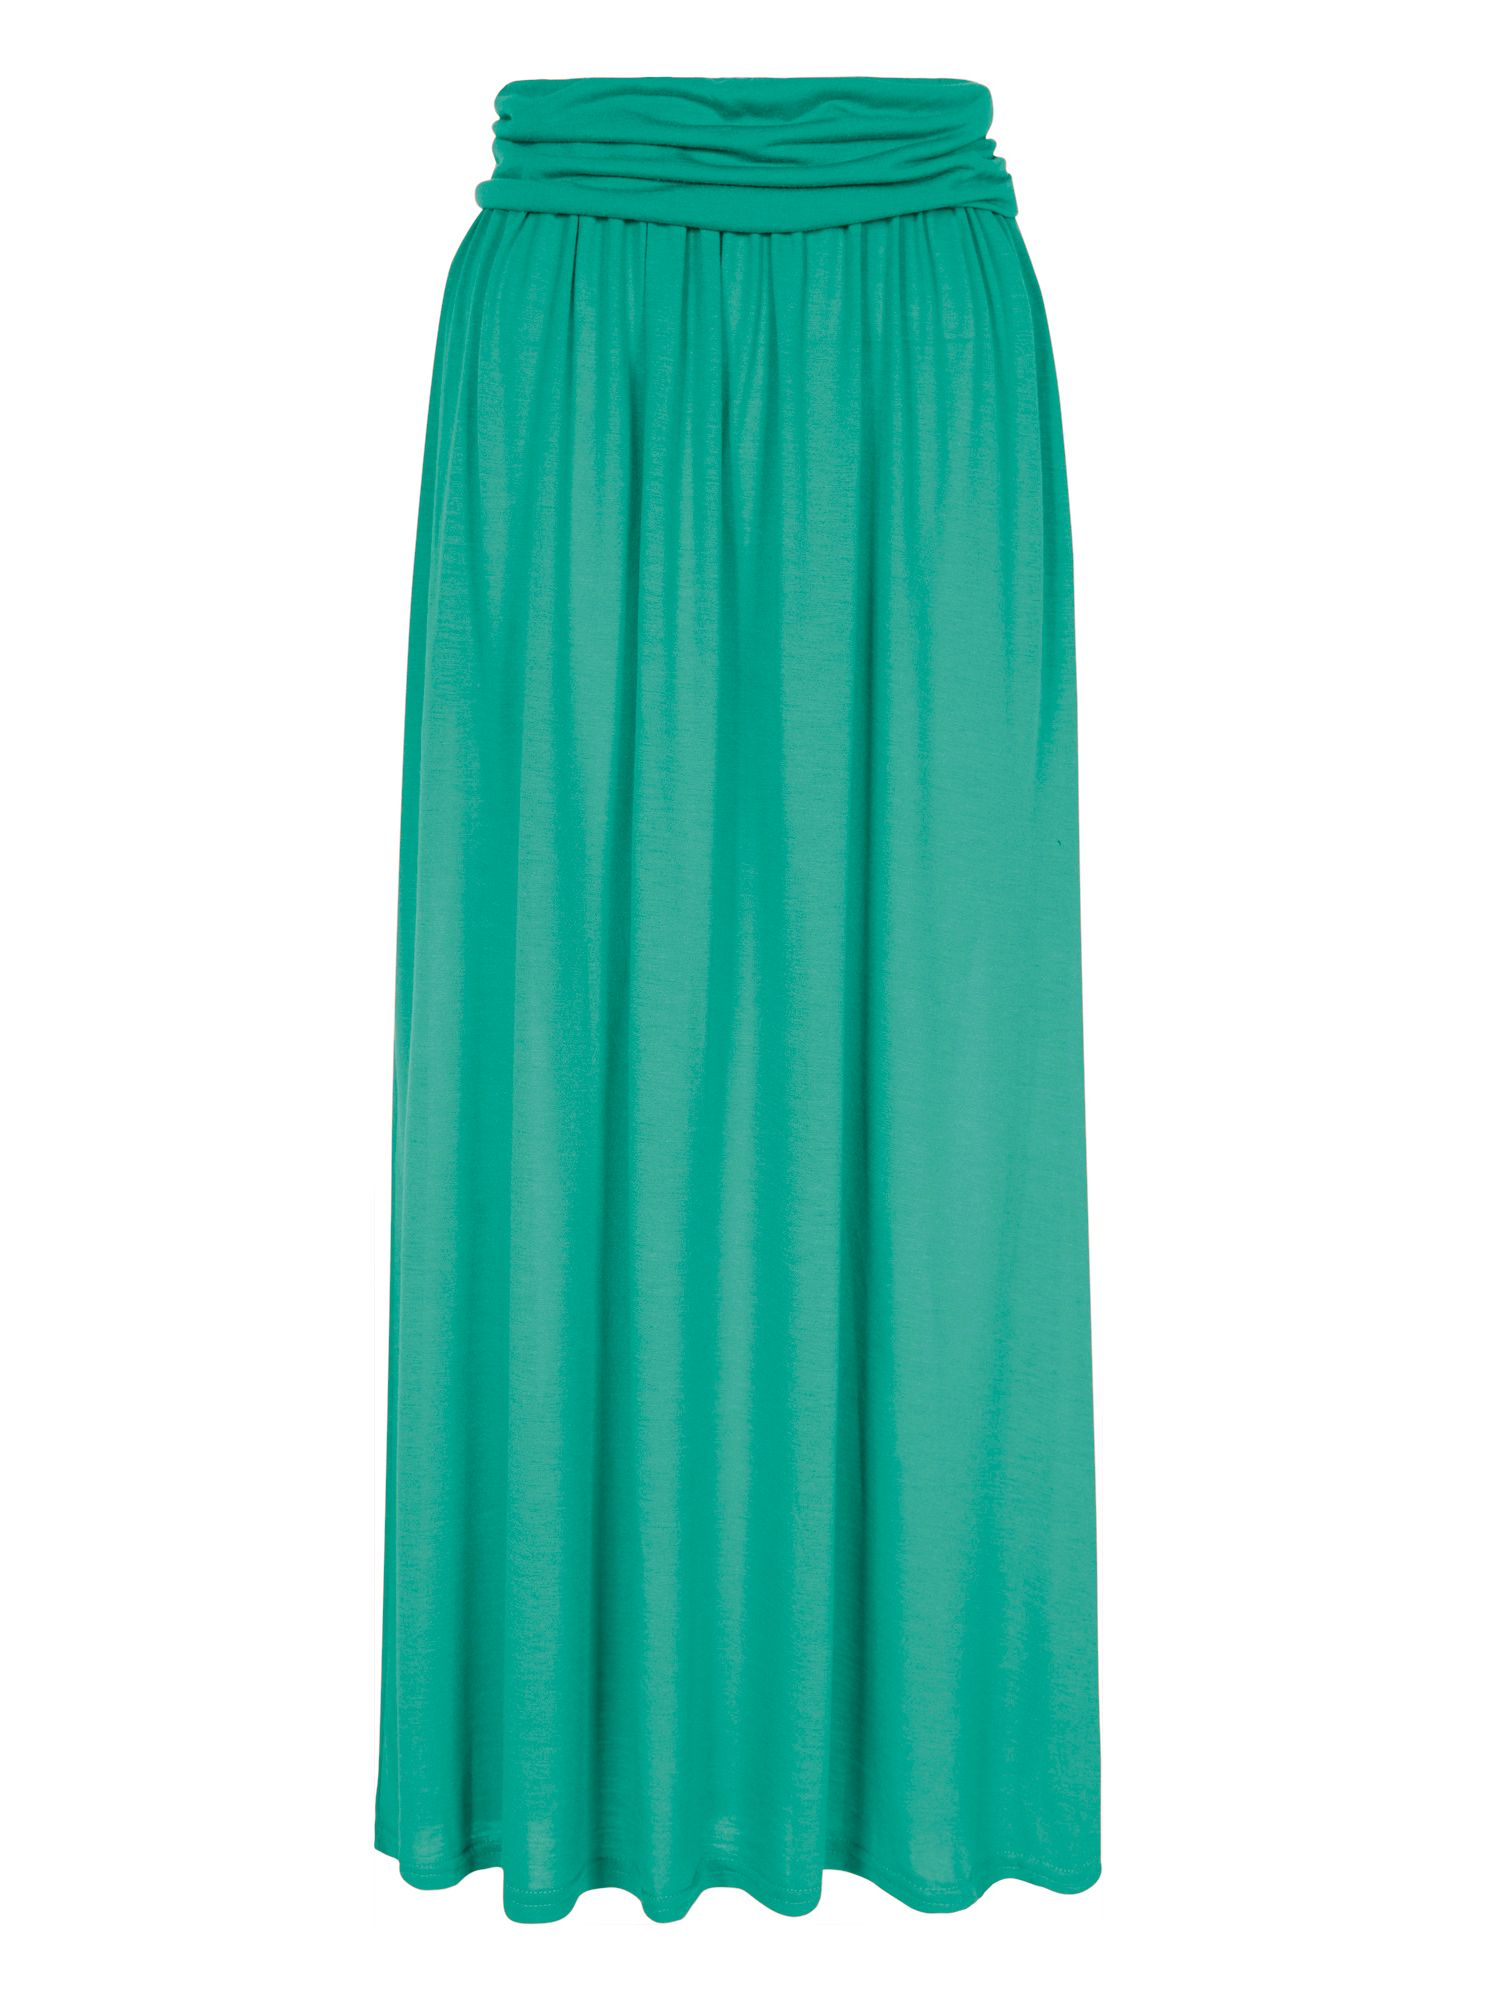 Hotsquash Coolfresh Maxi Skirt, Green